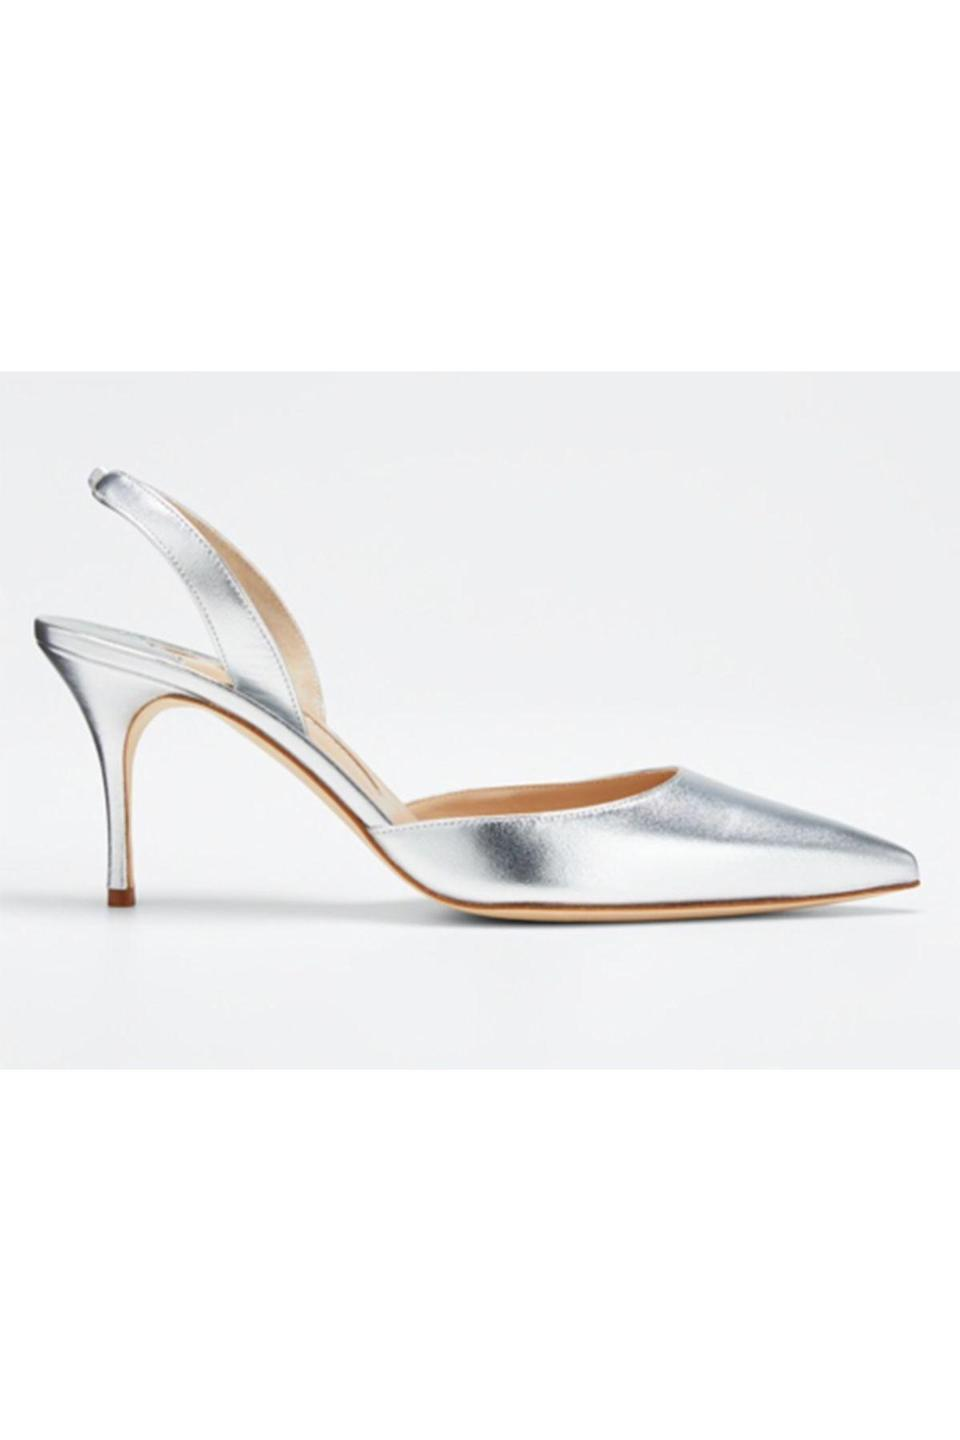 """<p><strong>Manolo Blahnik</strong></p><p>bergdorfgoodman.com</p><p><strong>$695.00</strong></p><p><a href=""""https://go.redirectingat.com?id=74968X1596630&url=https%3A%2F%2Fwww.bergdorfgoodman.com%2Fp%2Fmanolo-blahnik-carolyne-metallic-leather-mid-heel-slingback-pumps-prod146600012&sref=https%3A%2F%2Fwww.townandcountrymag.com%2Fstyle%2Ffashion-trends%2Fg36544376%2Fbest-metallic-accessories%2F"""" rel=""""nofollow noopener"""" target=""""_blank"""" data-ylk=""""slk:Shop Now"""" class=""""link rapid-noclick-resp"""">Shop Now</a></p><p> No matter how warm a summer evening might get, you'll look perfectly cool in these silver slingbacks. </p>"""